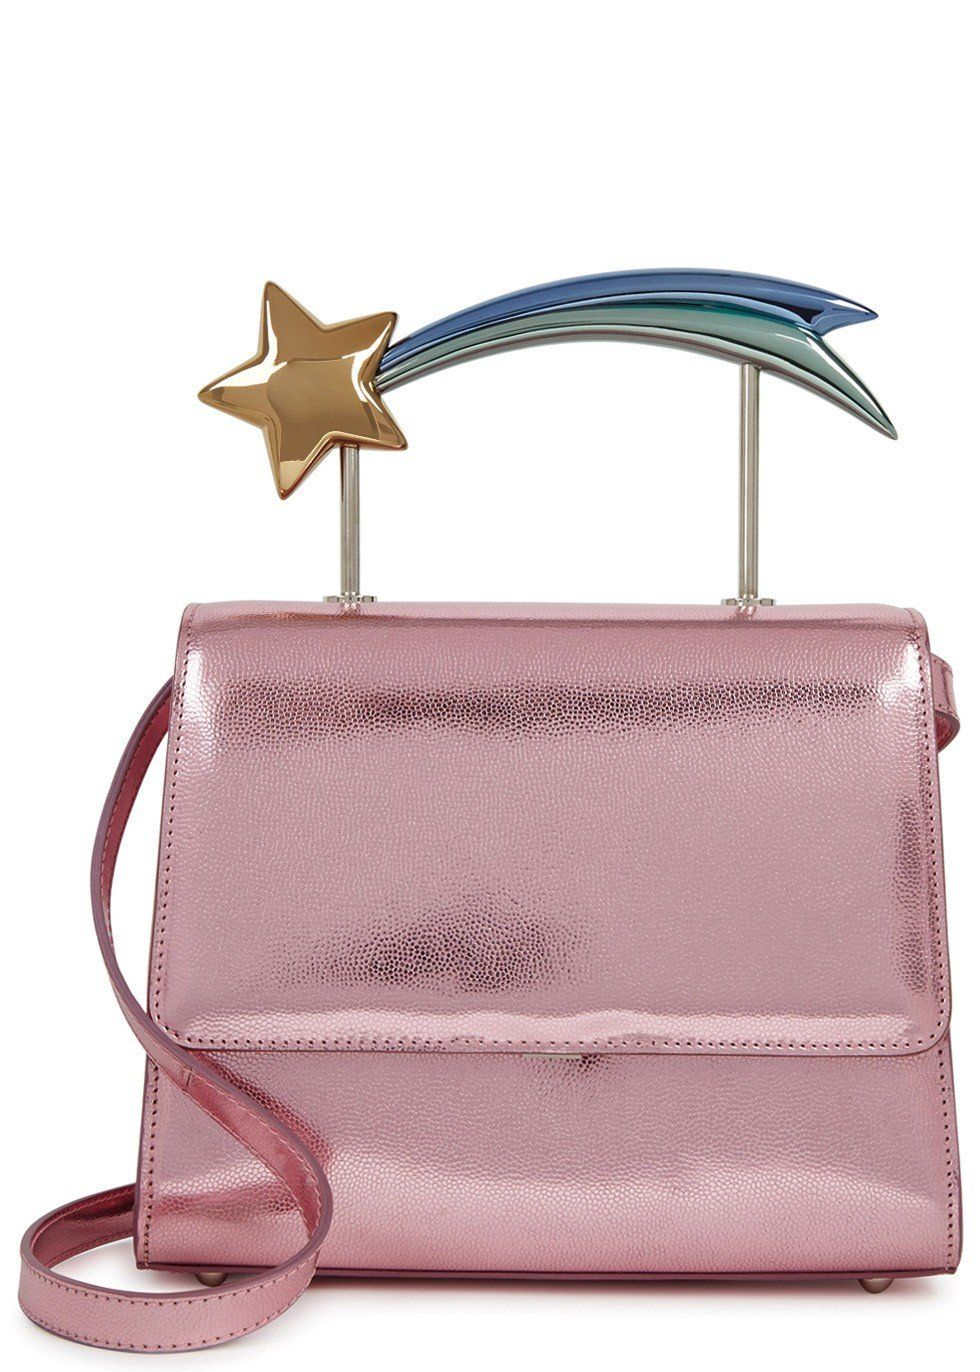 d3bd3707f92 Exclusive to Harvey Nichols Ming Ray metallic pink leather box bag ...